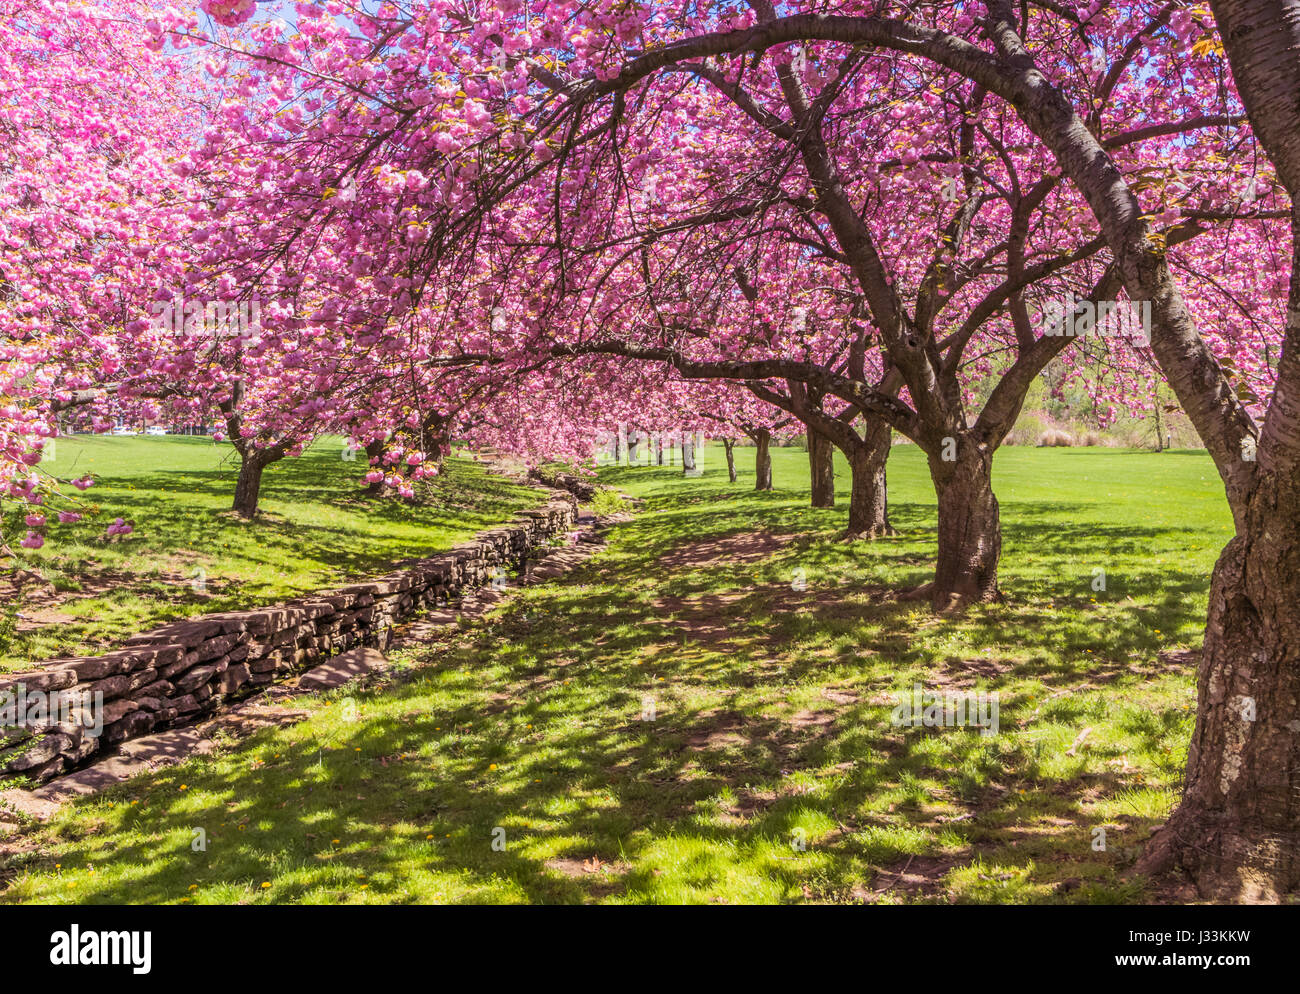 Pink cherry trees in full bloom drape gracefully near a stone canal under bright blue sky in springtime - Stock Image